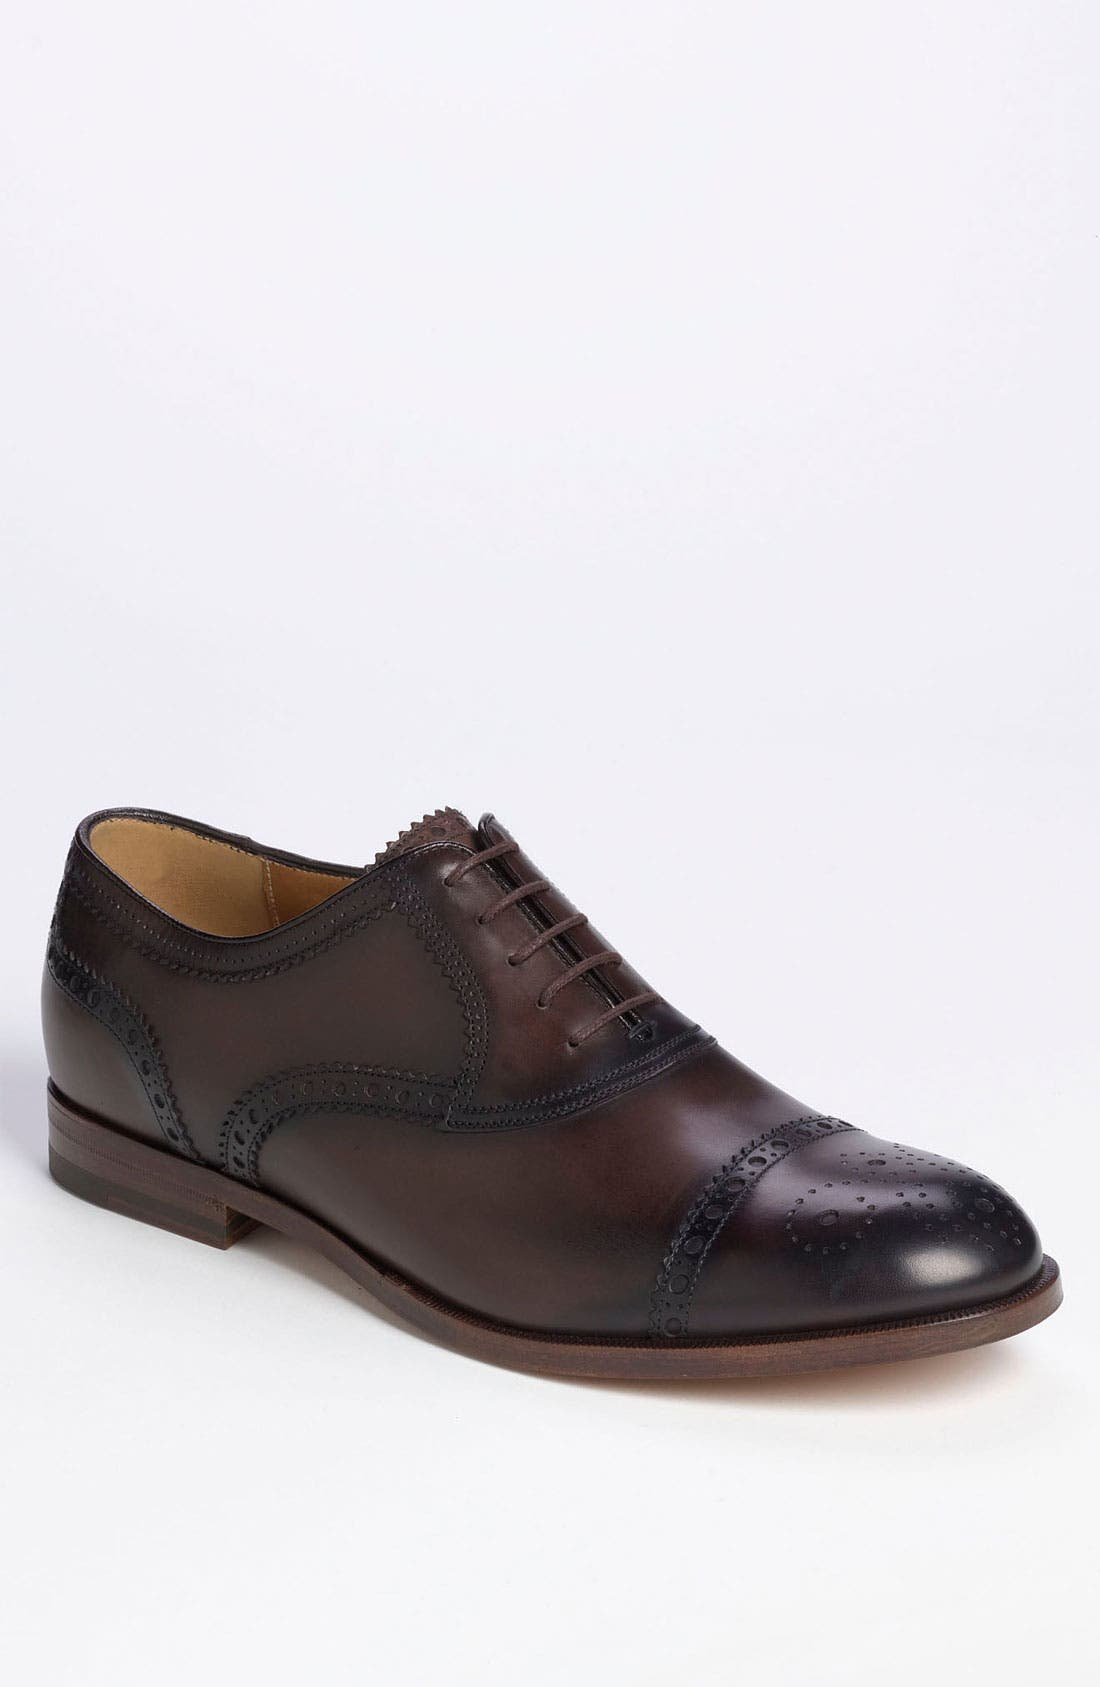 Alternate Image 1 Selected - Gucci 'Samo' Cap Toe Oxford